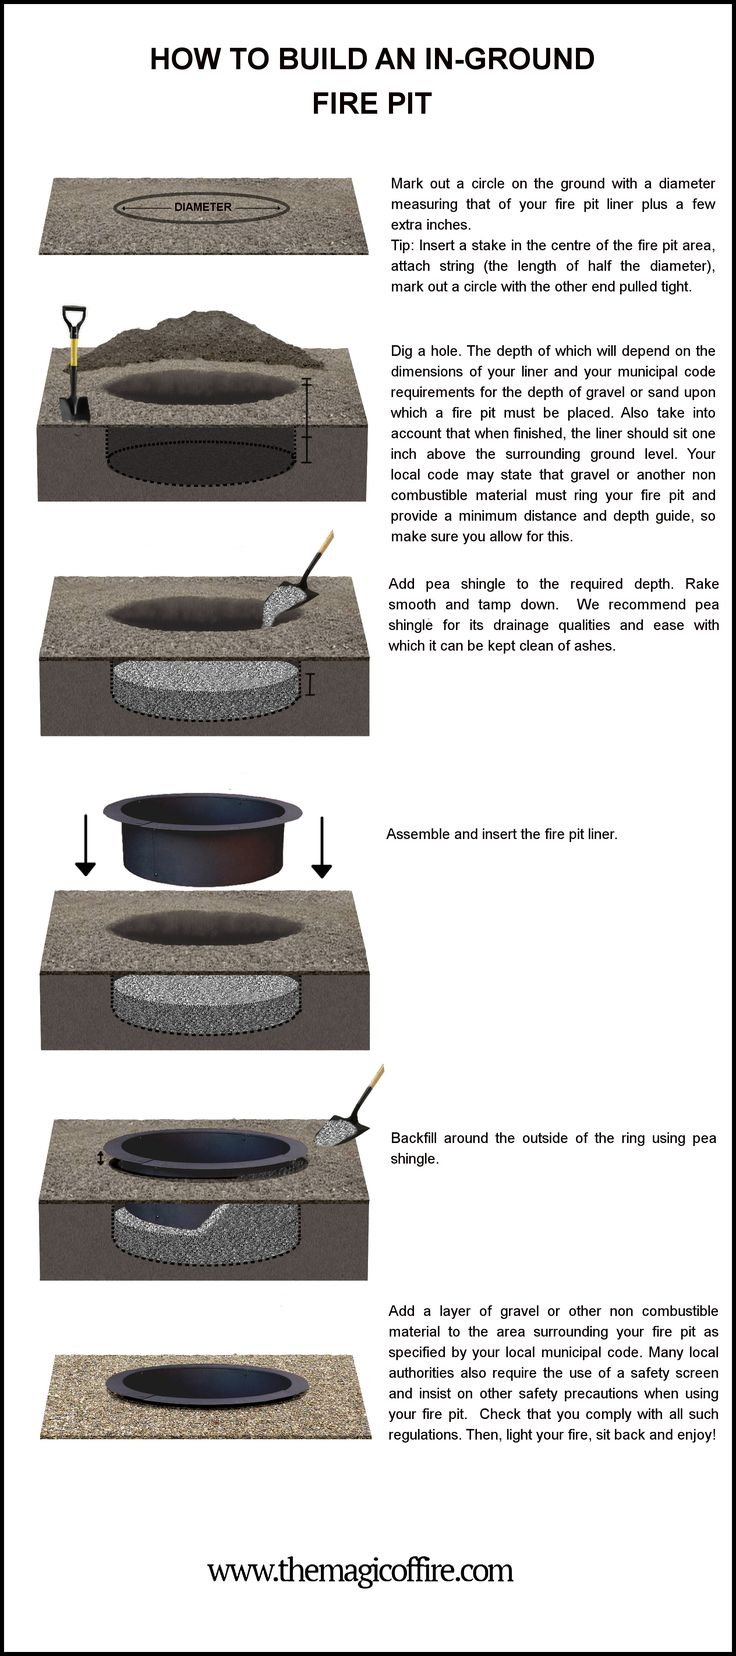 A step by step guide on how to build an in-ground fire pit   using a steel fire pit liner. For more information on designing, building and maintaining fire pits, go to: http://www.themagicoffire.com/blog/